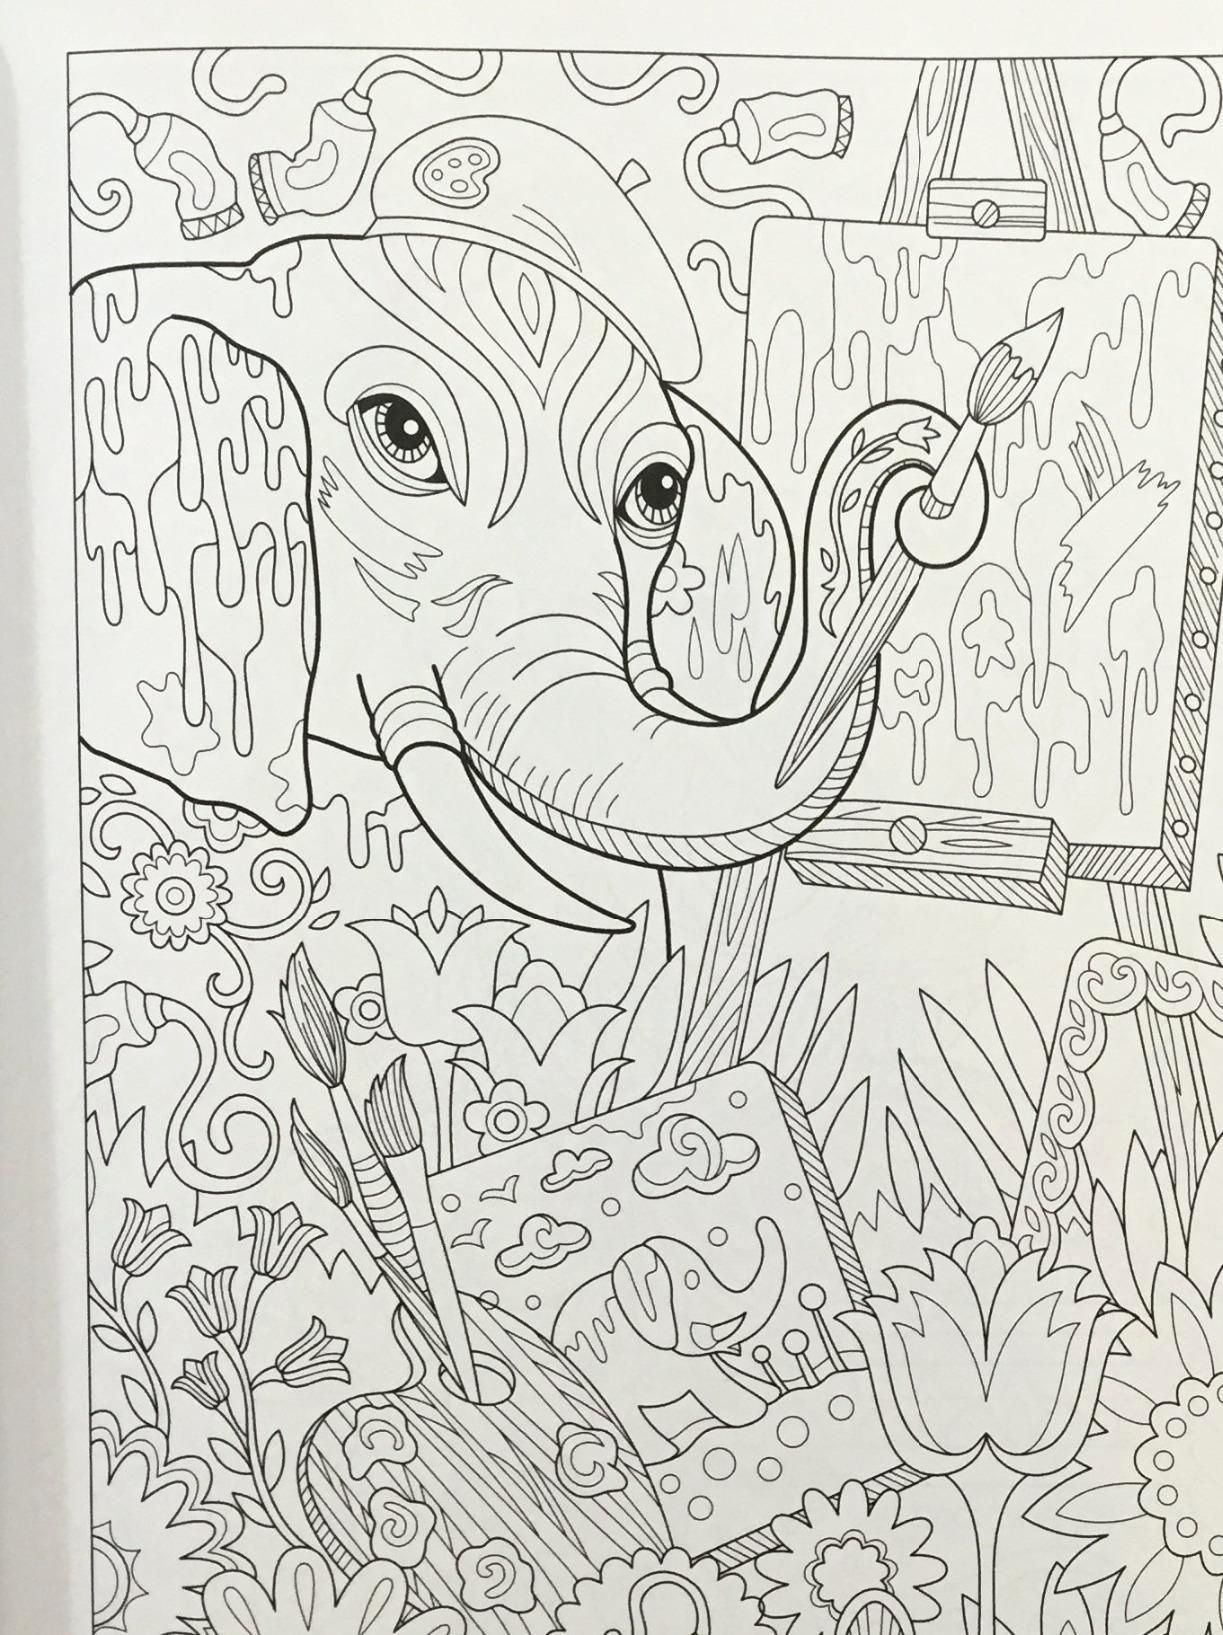 Most Up To Date Snap Shots Coloring Books Elephant Ideas This Can Be The Final Secrets And Techniques For Colouring For Older People Have Suggested Older Co B